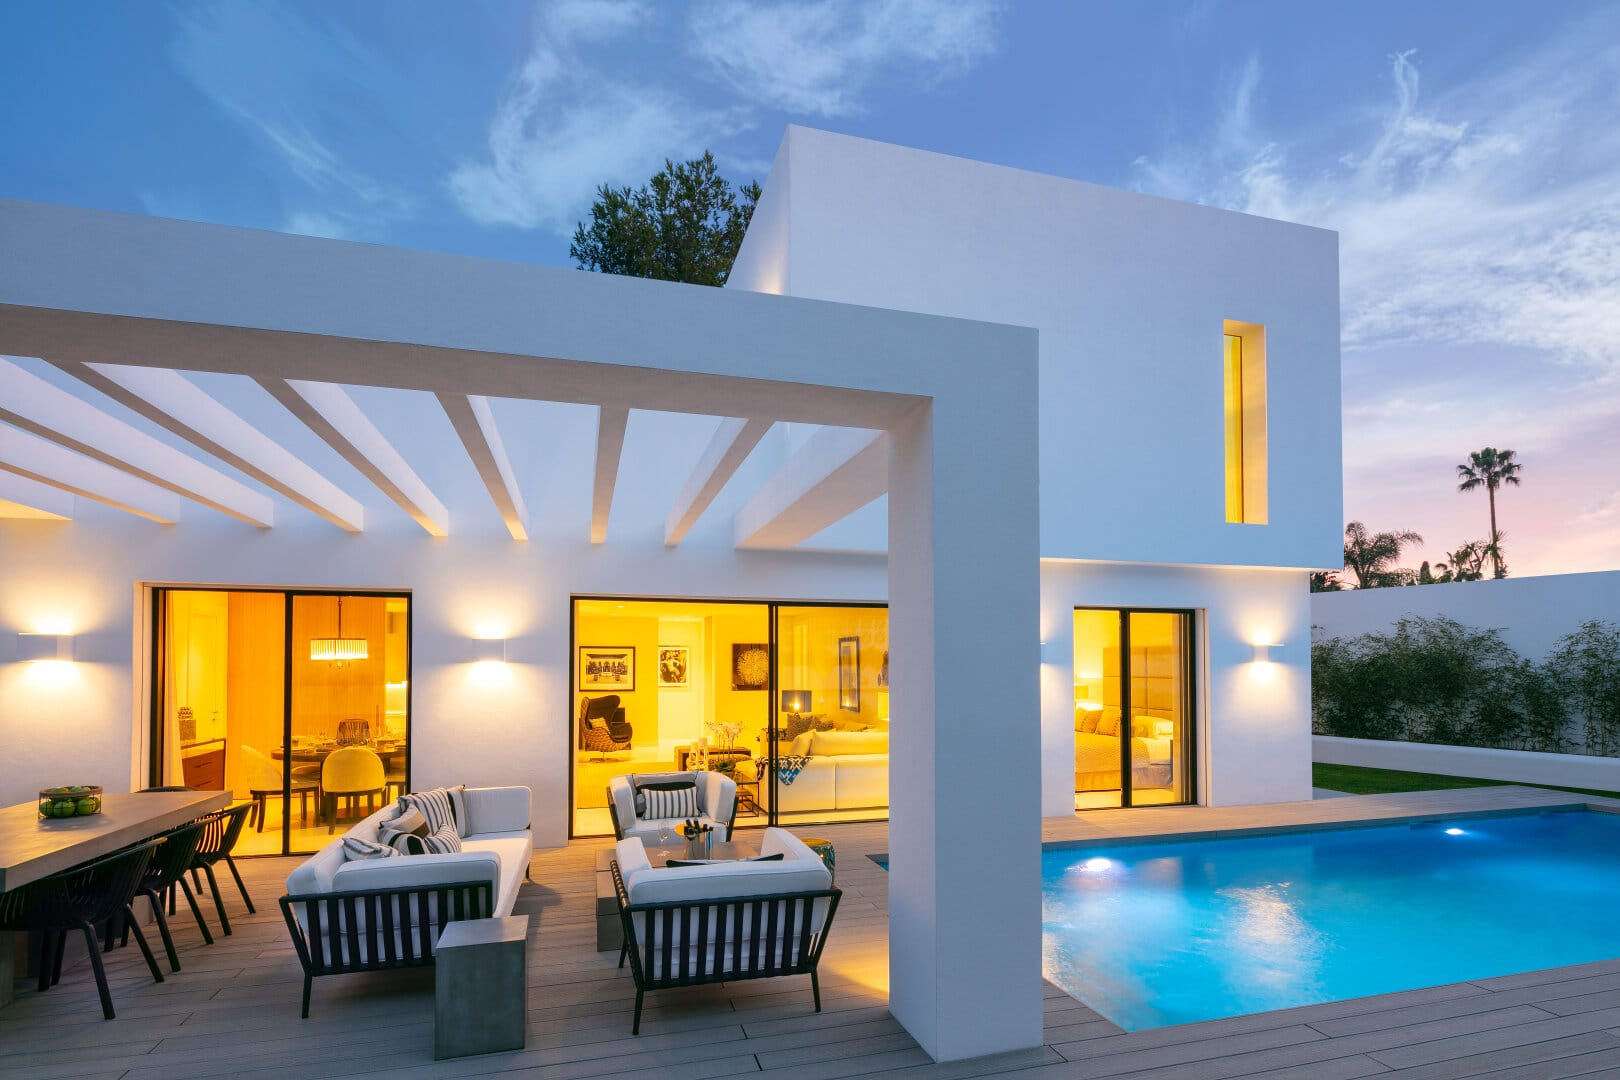 New contemporary villa in Guadalmina Alta within walking distance to all amenities, commercial centre and golf.